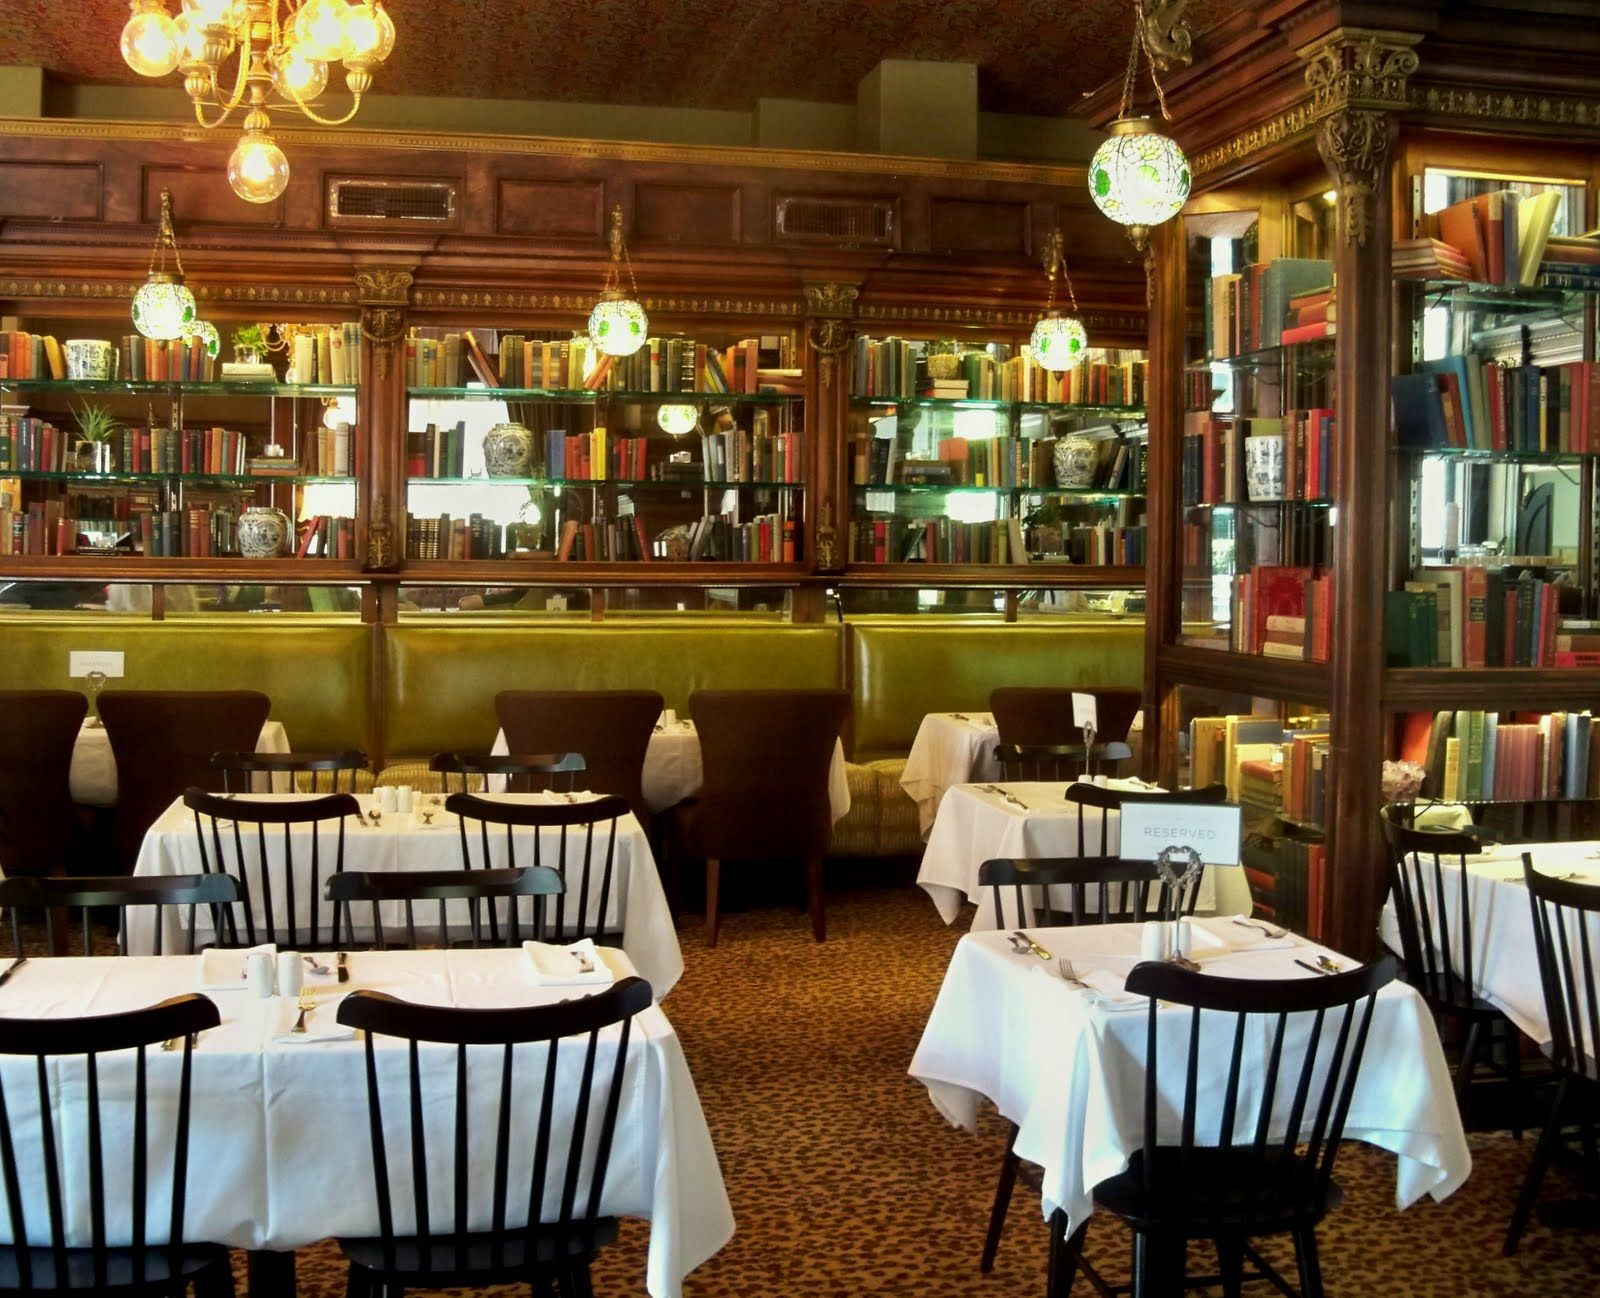 Gryphon Tea Room Savannah Ga A Must For Lunch What Great Spot Friend One Of My Favorite Places In